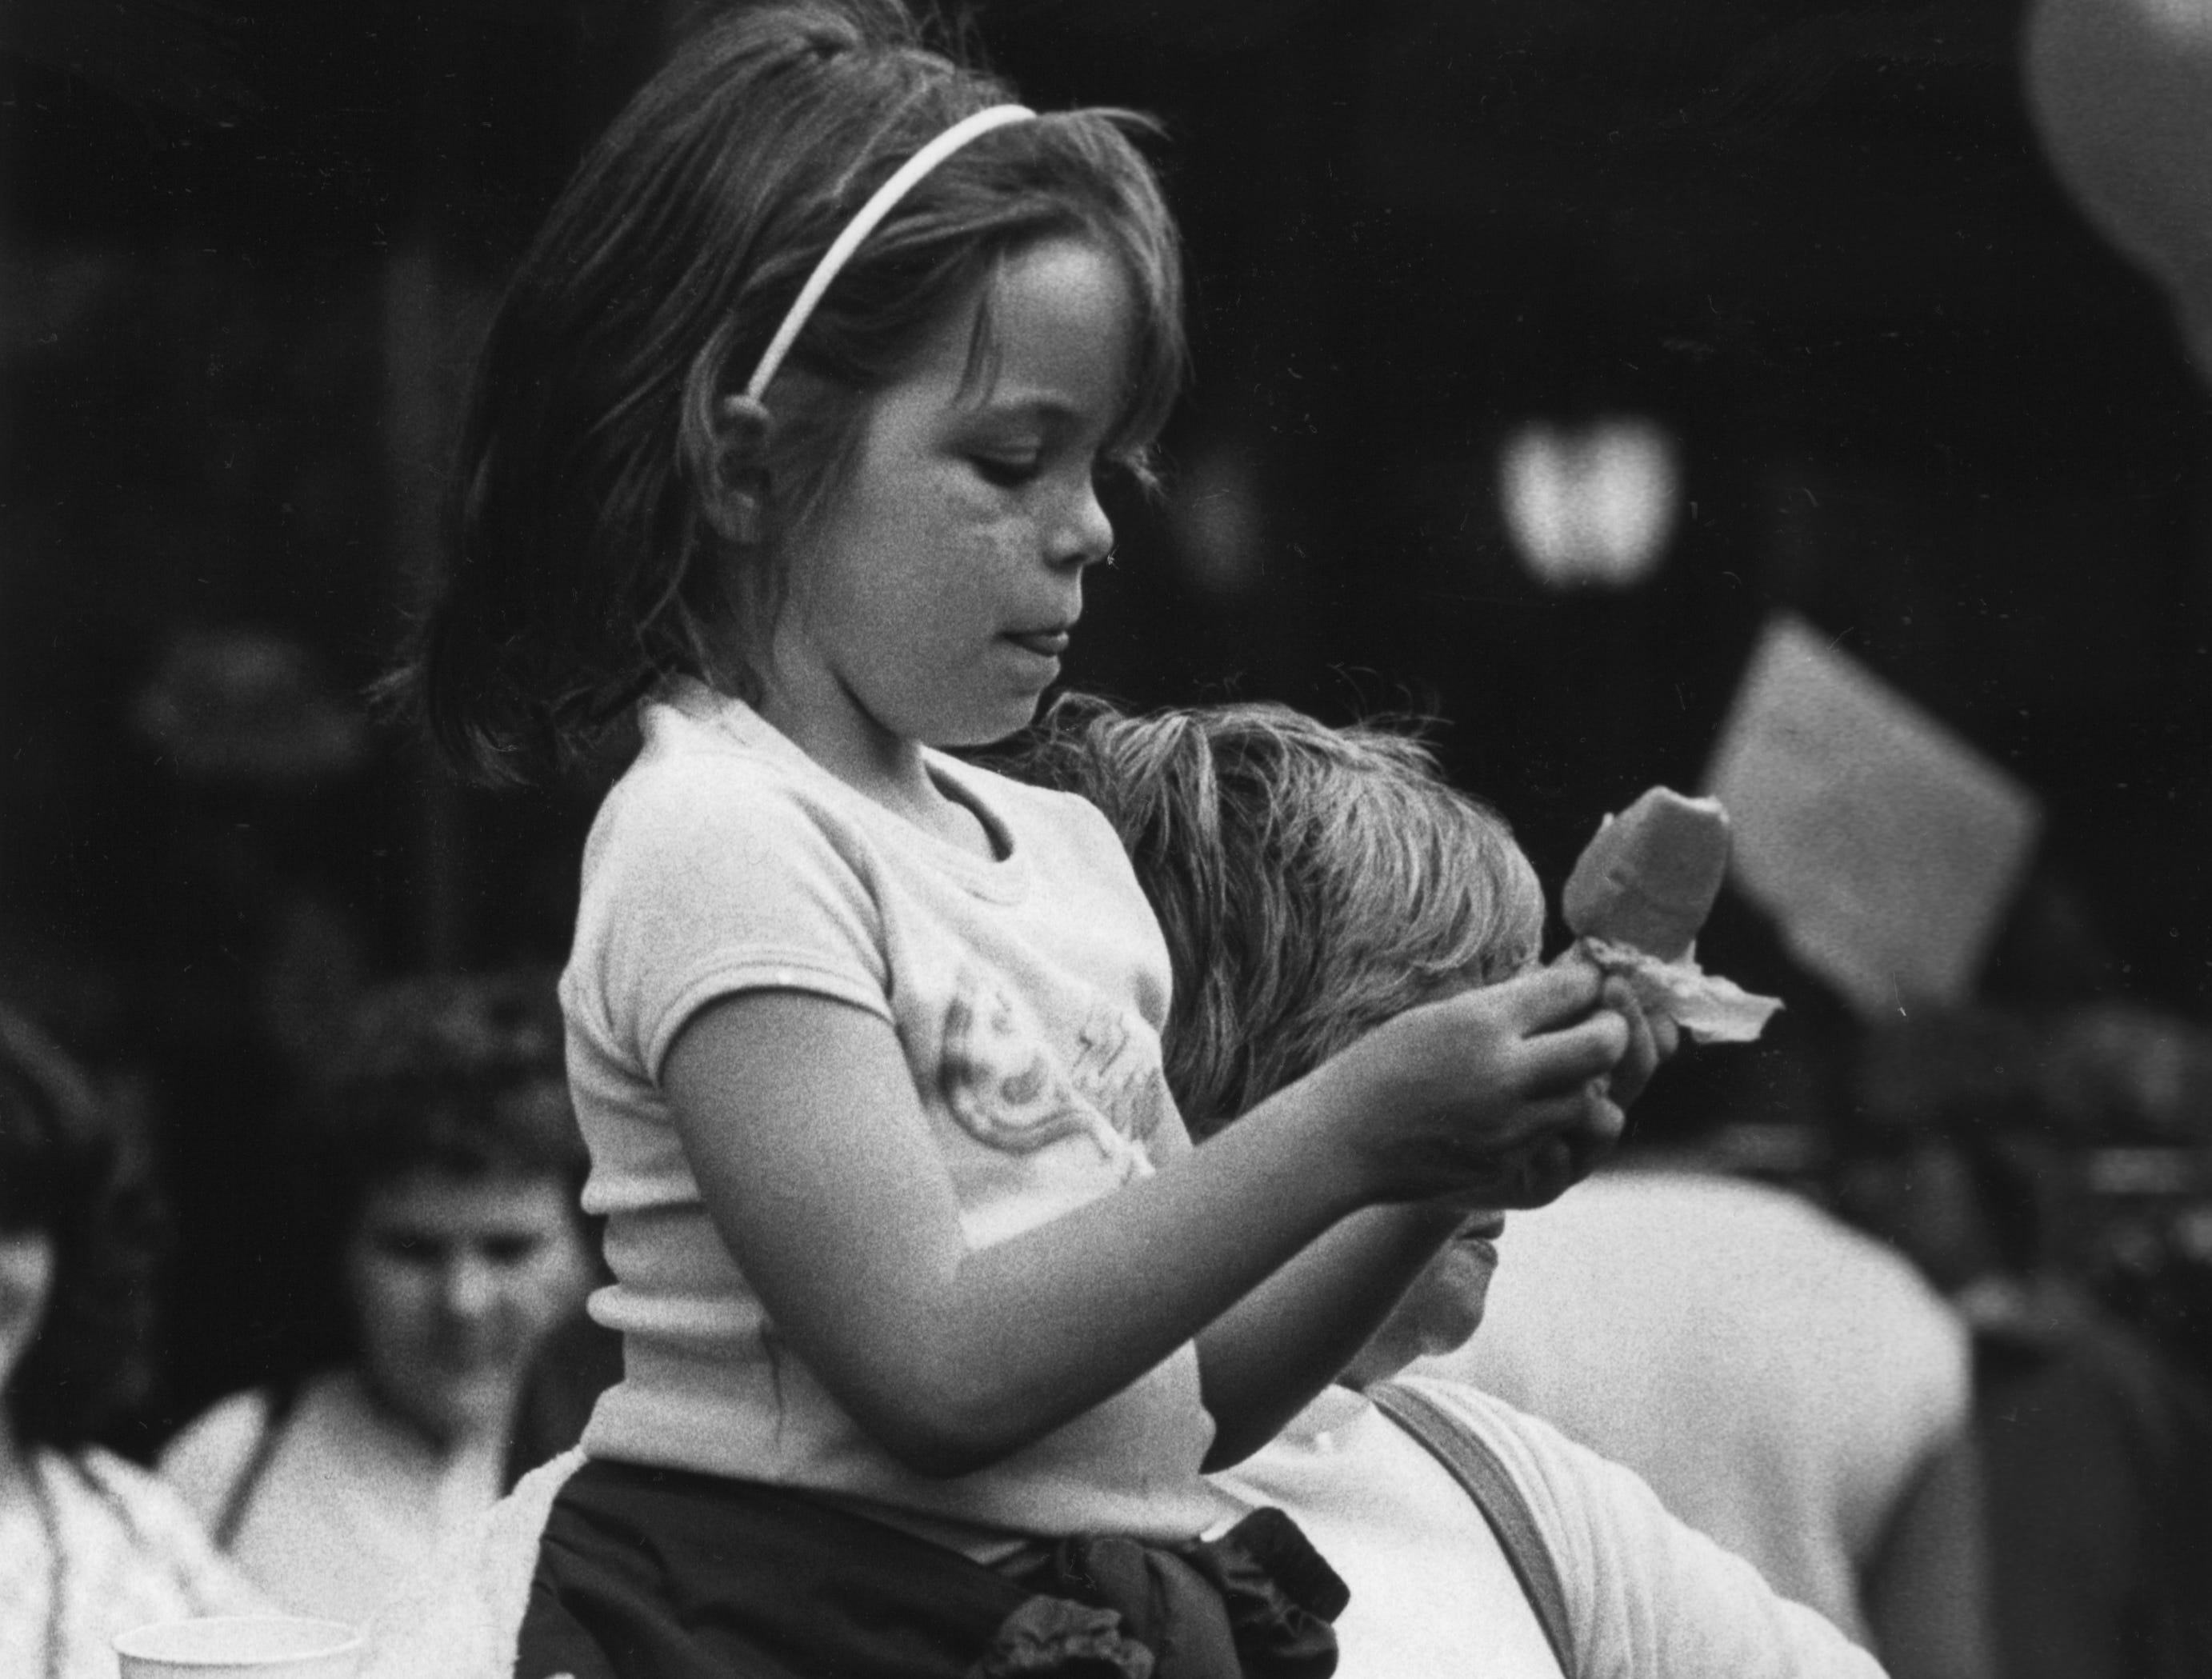 Collen Kispert, 8, enjoys an ice cream treat during the Dogwood Arts Festival April 14, 1984 at Market Square Mall. Colleen, the daughter of Ken and Marilyn Kispert, attended the festival with her grandmother, Jean Gillen, from Chicago, Ill.